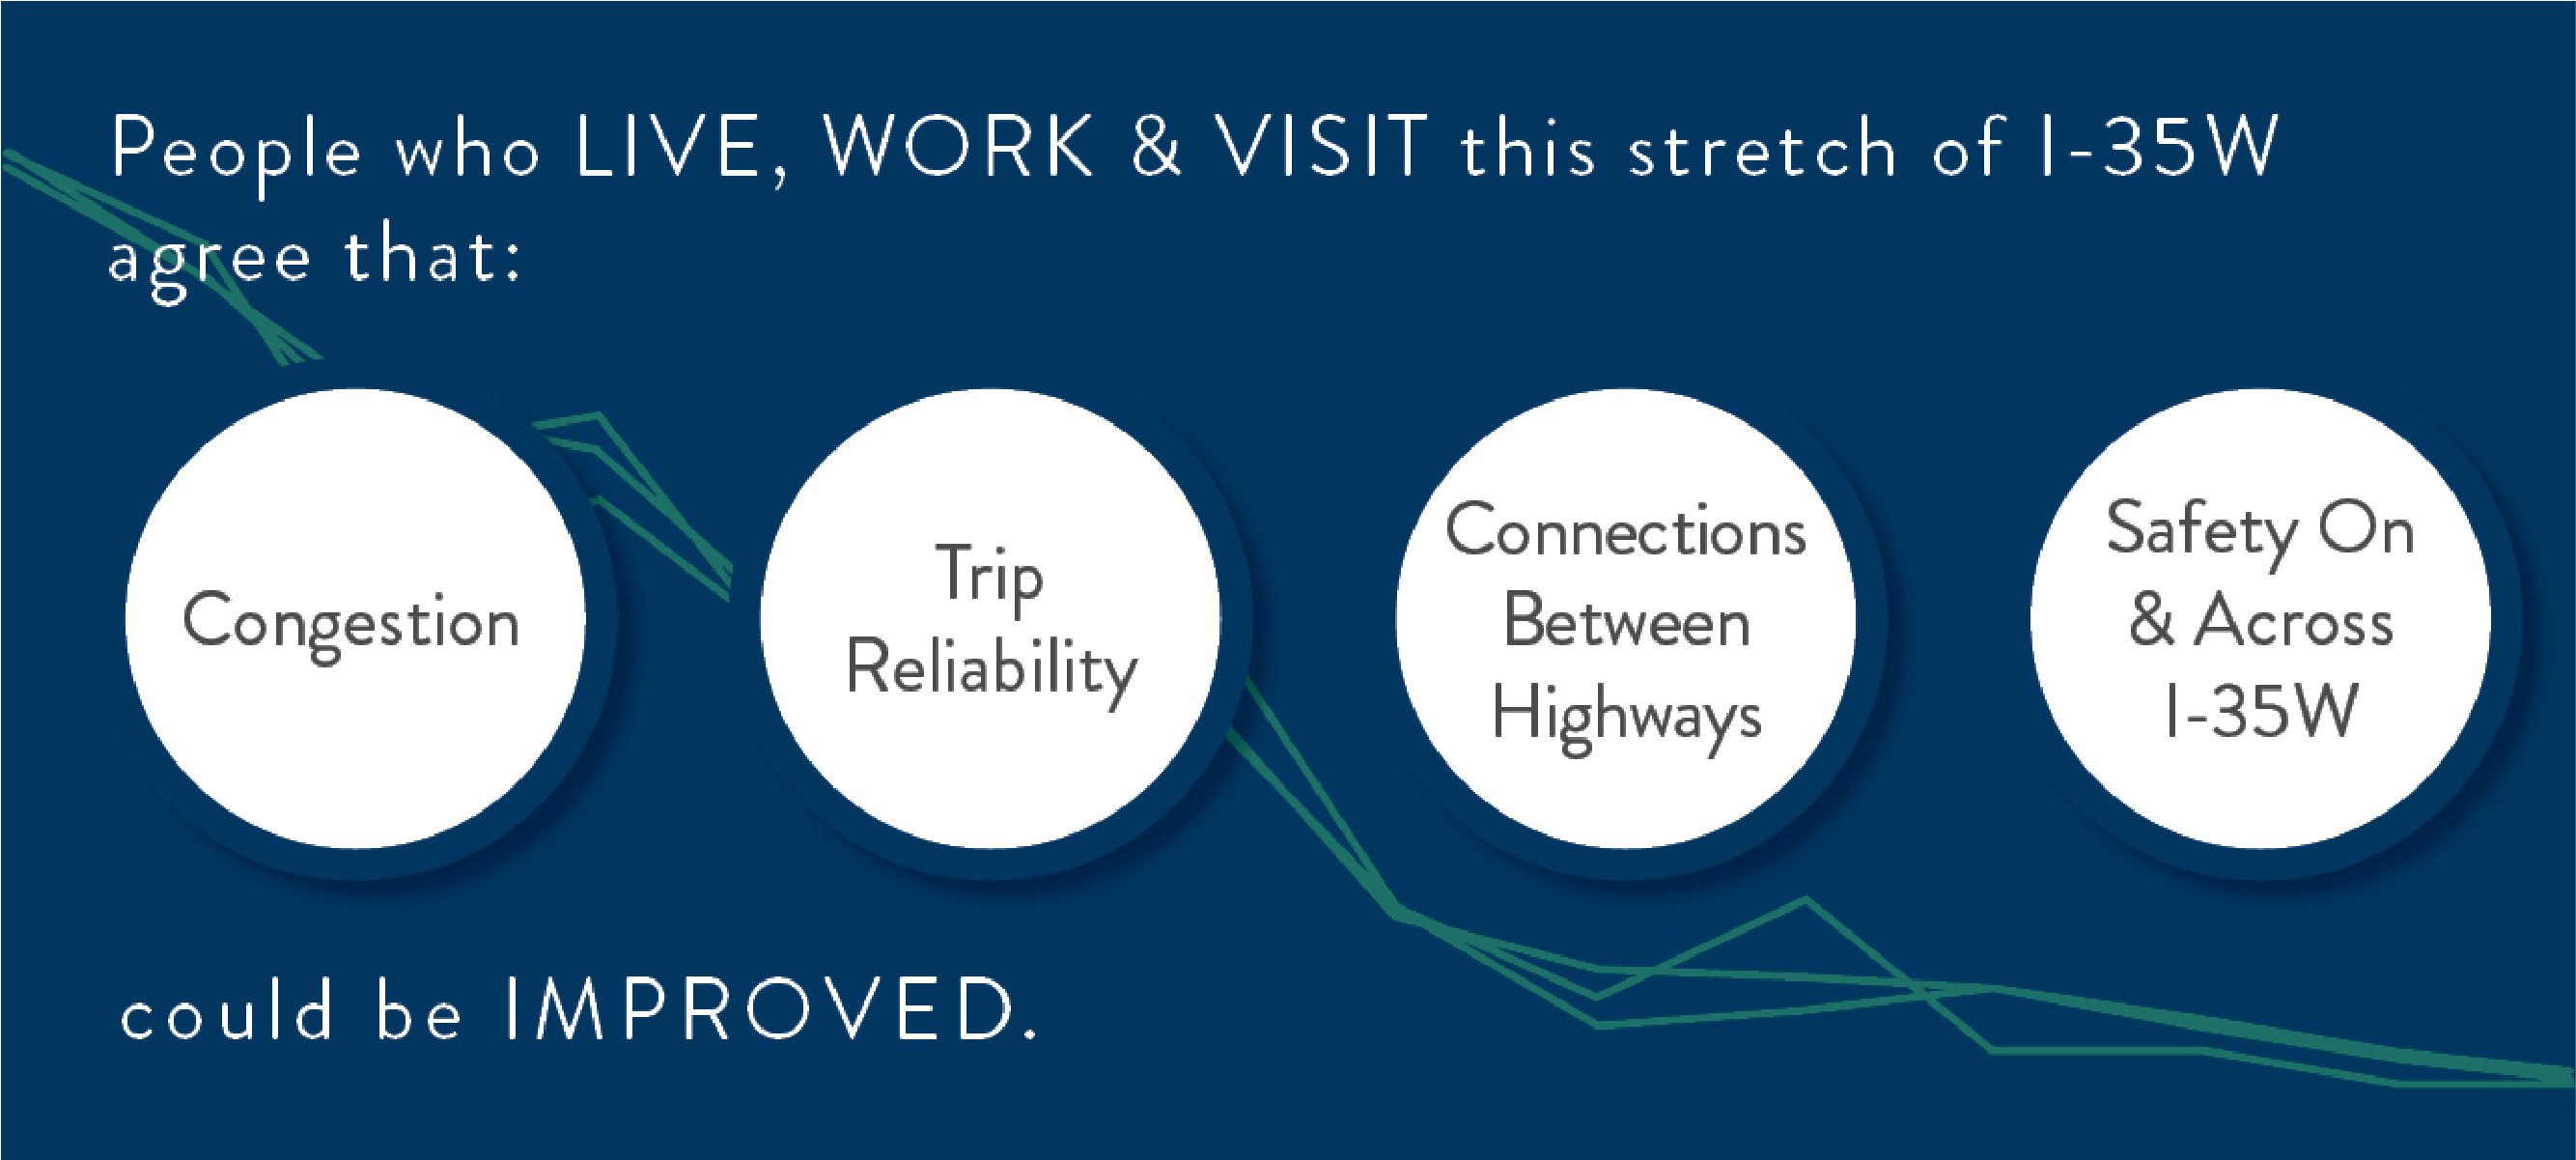 People who live, work and visit this stretch of I-35W agree that congestion, trip reliability, connections between highways, and safety on and across I-35W could be improved.